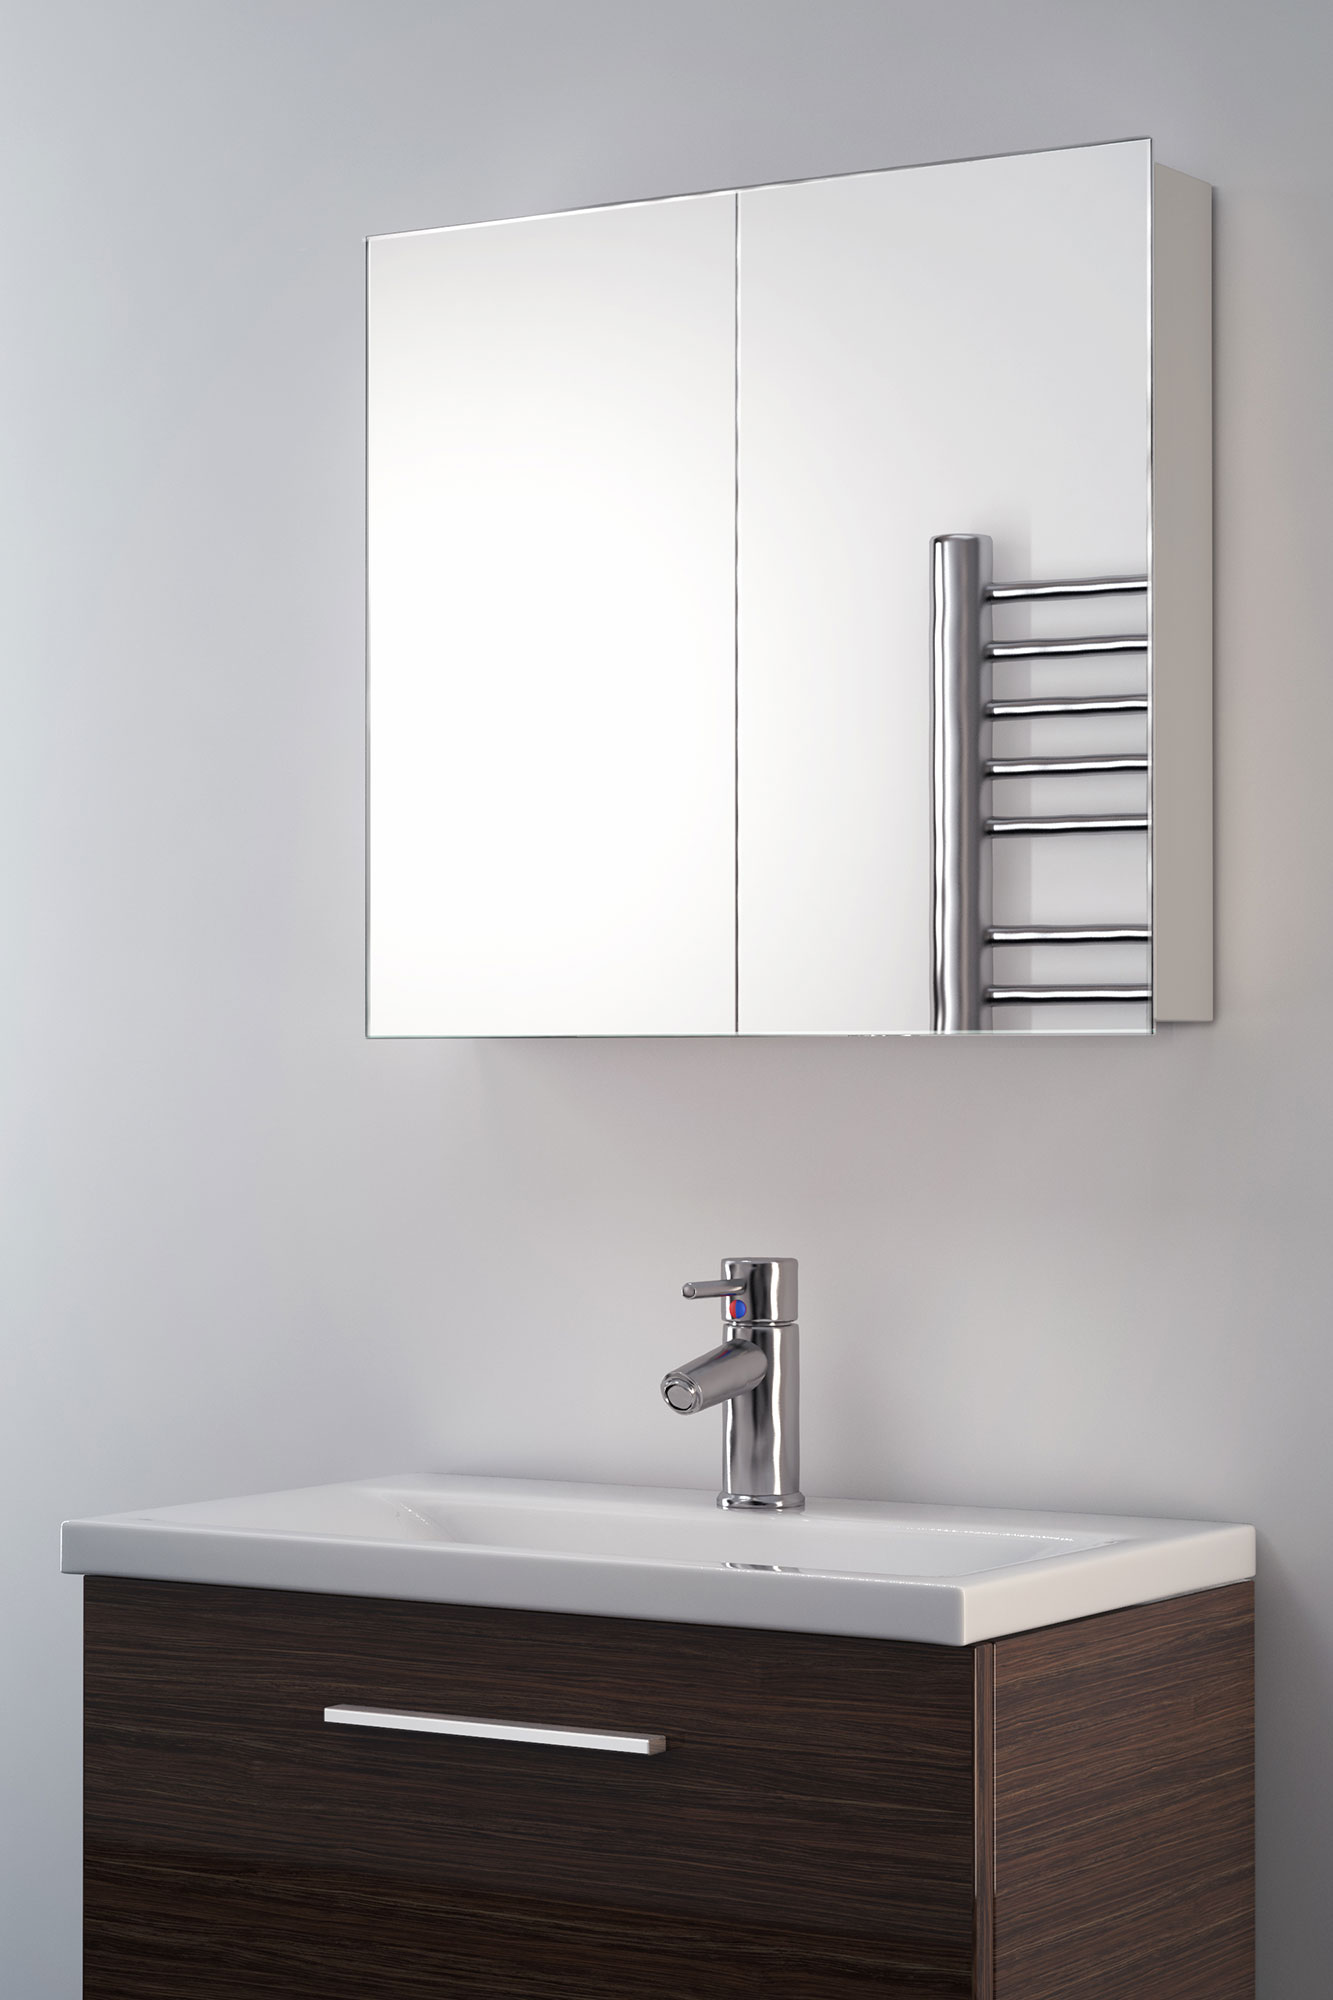 Eleanor Non-Illuminated Bathroom Mirror Cabinet k137 by Powerful Vision Ltd.